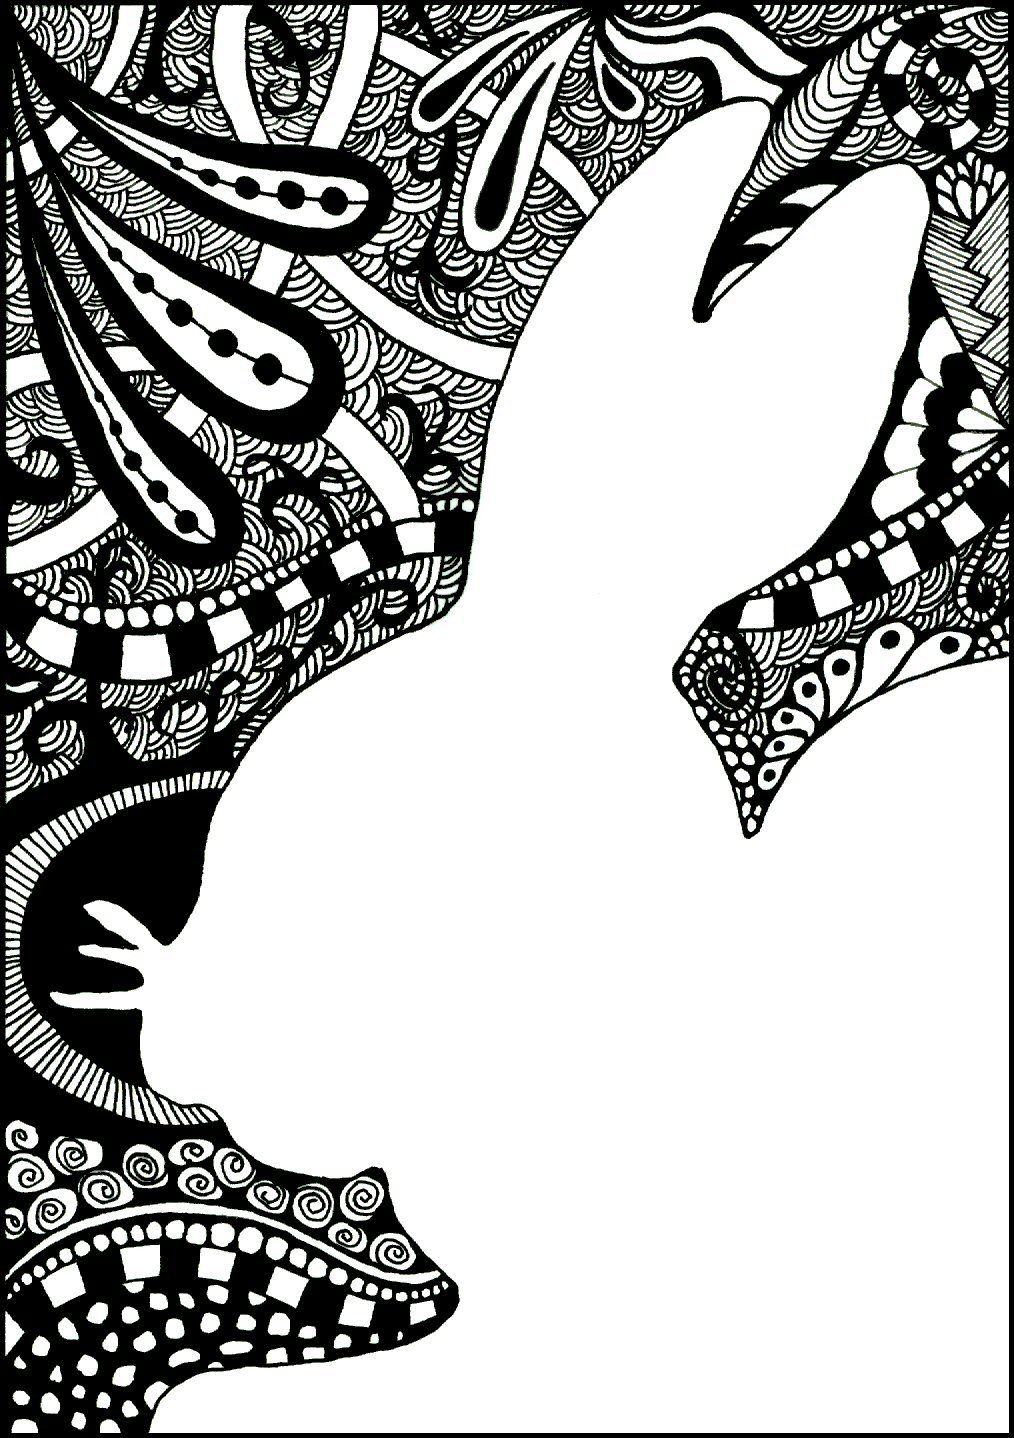 www.TangleTangleTangle.com | Zentangle art, Tangle art ...